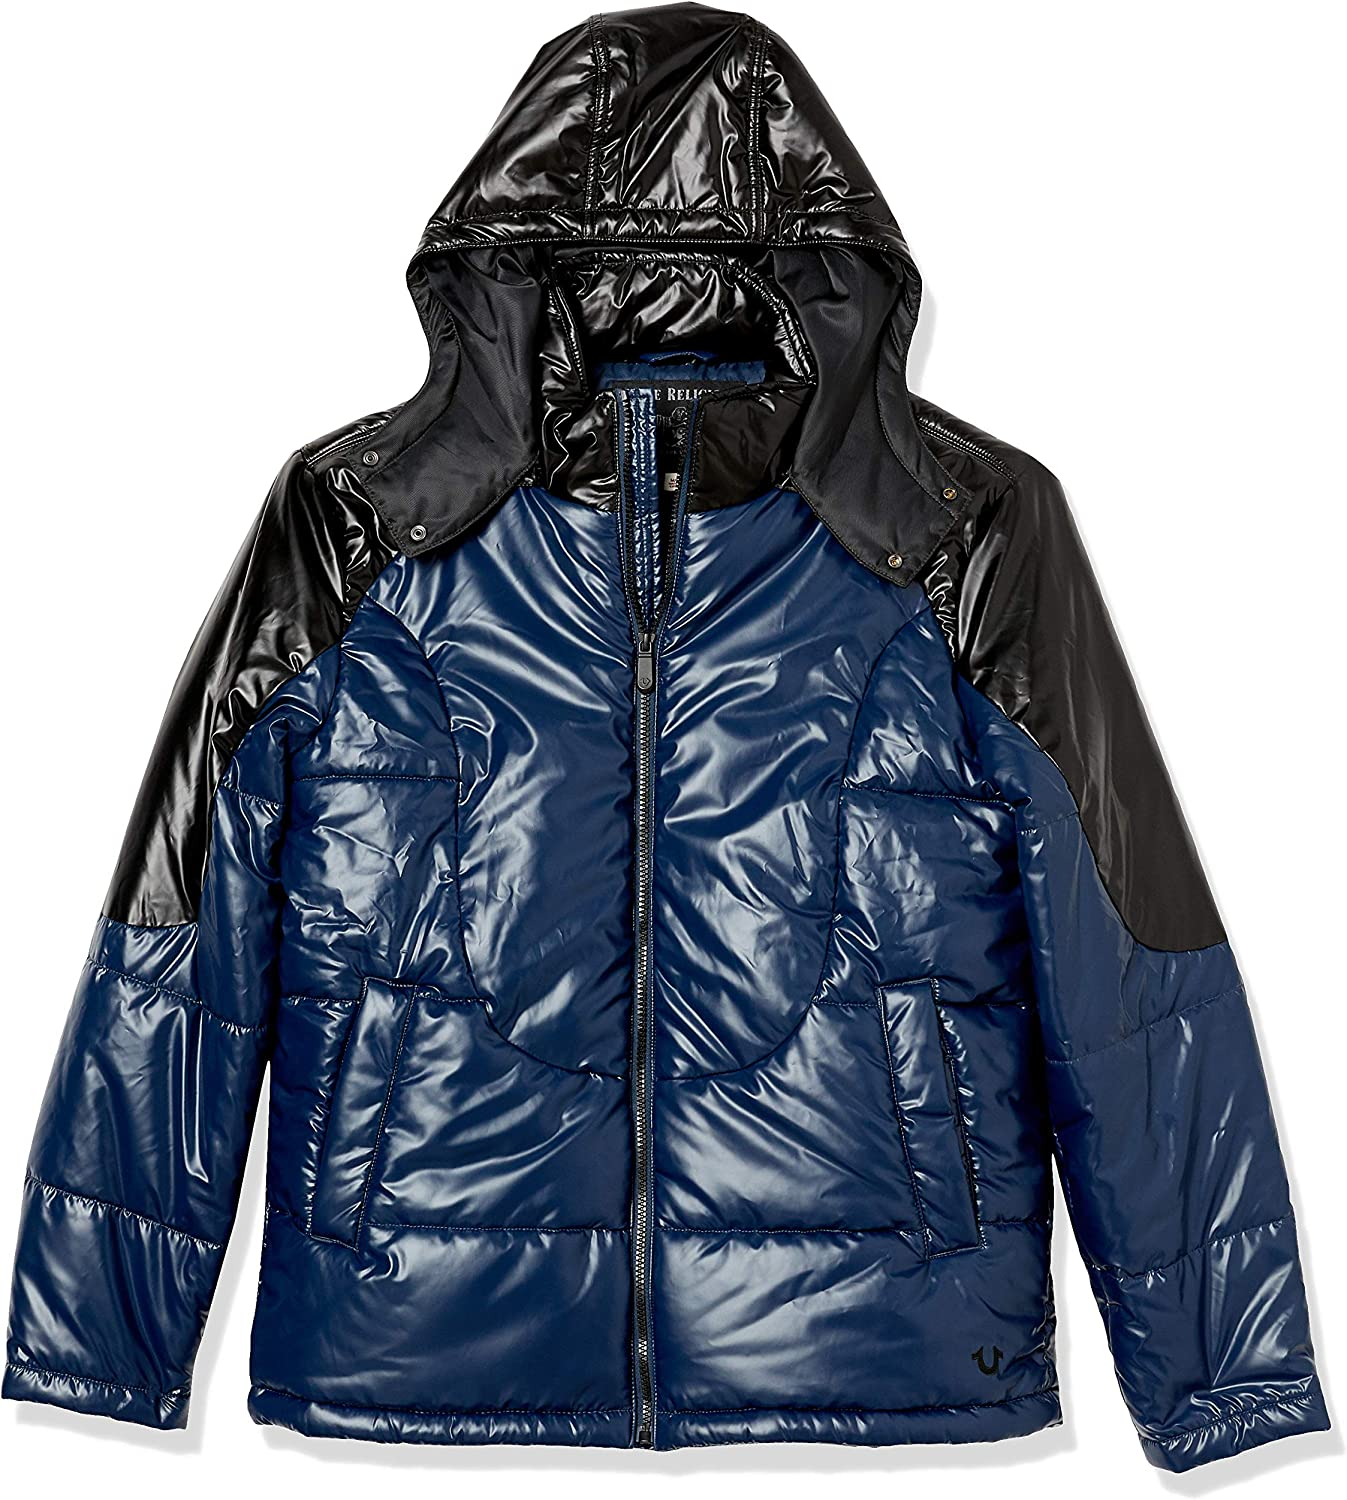 True Choice Outlet sale feature Religion Men's Hooded Shiny Jacket Long Puffer Sleeve